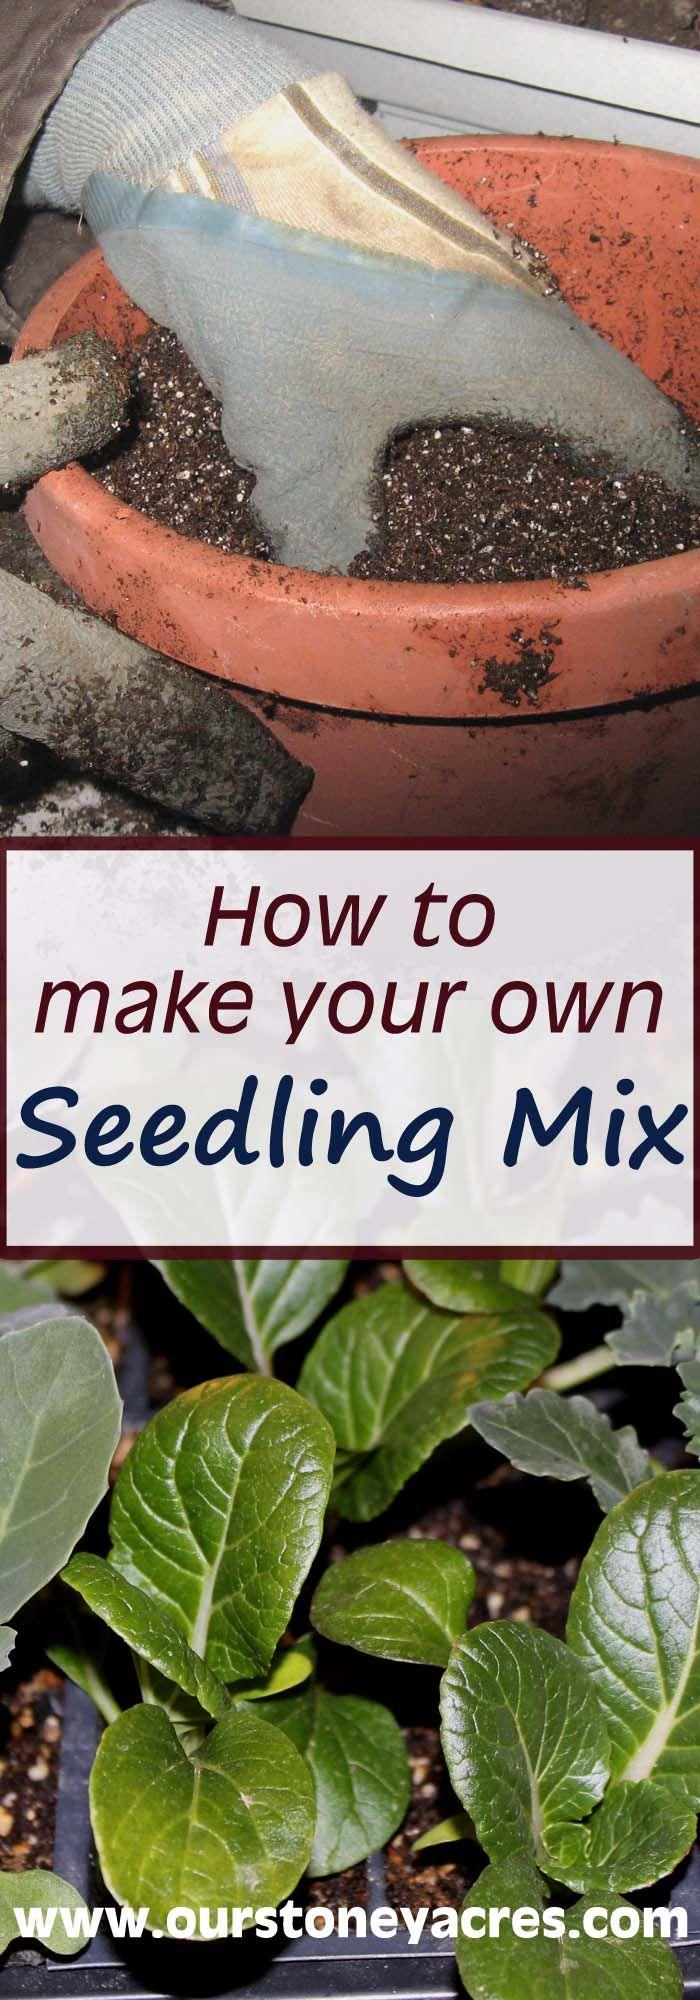 Making homemade seedling mix is quite easy and can save you a ton of money.  Especially if you plan on using a lot of it this year!  If you plan on growing your own seedlings for your garden this year be sure to learn how to make your own homemade seedling mix.  Learn how by reading this post!